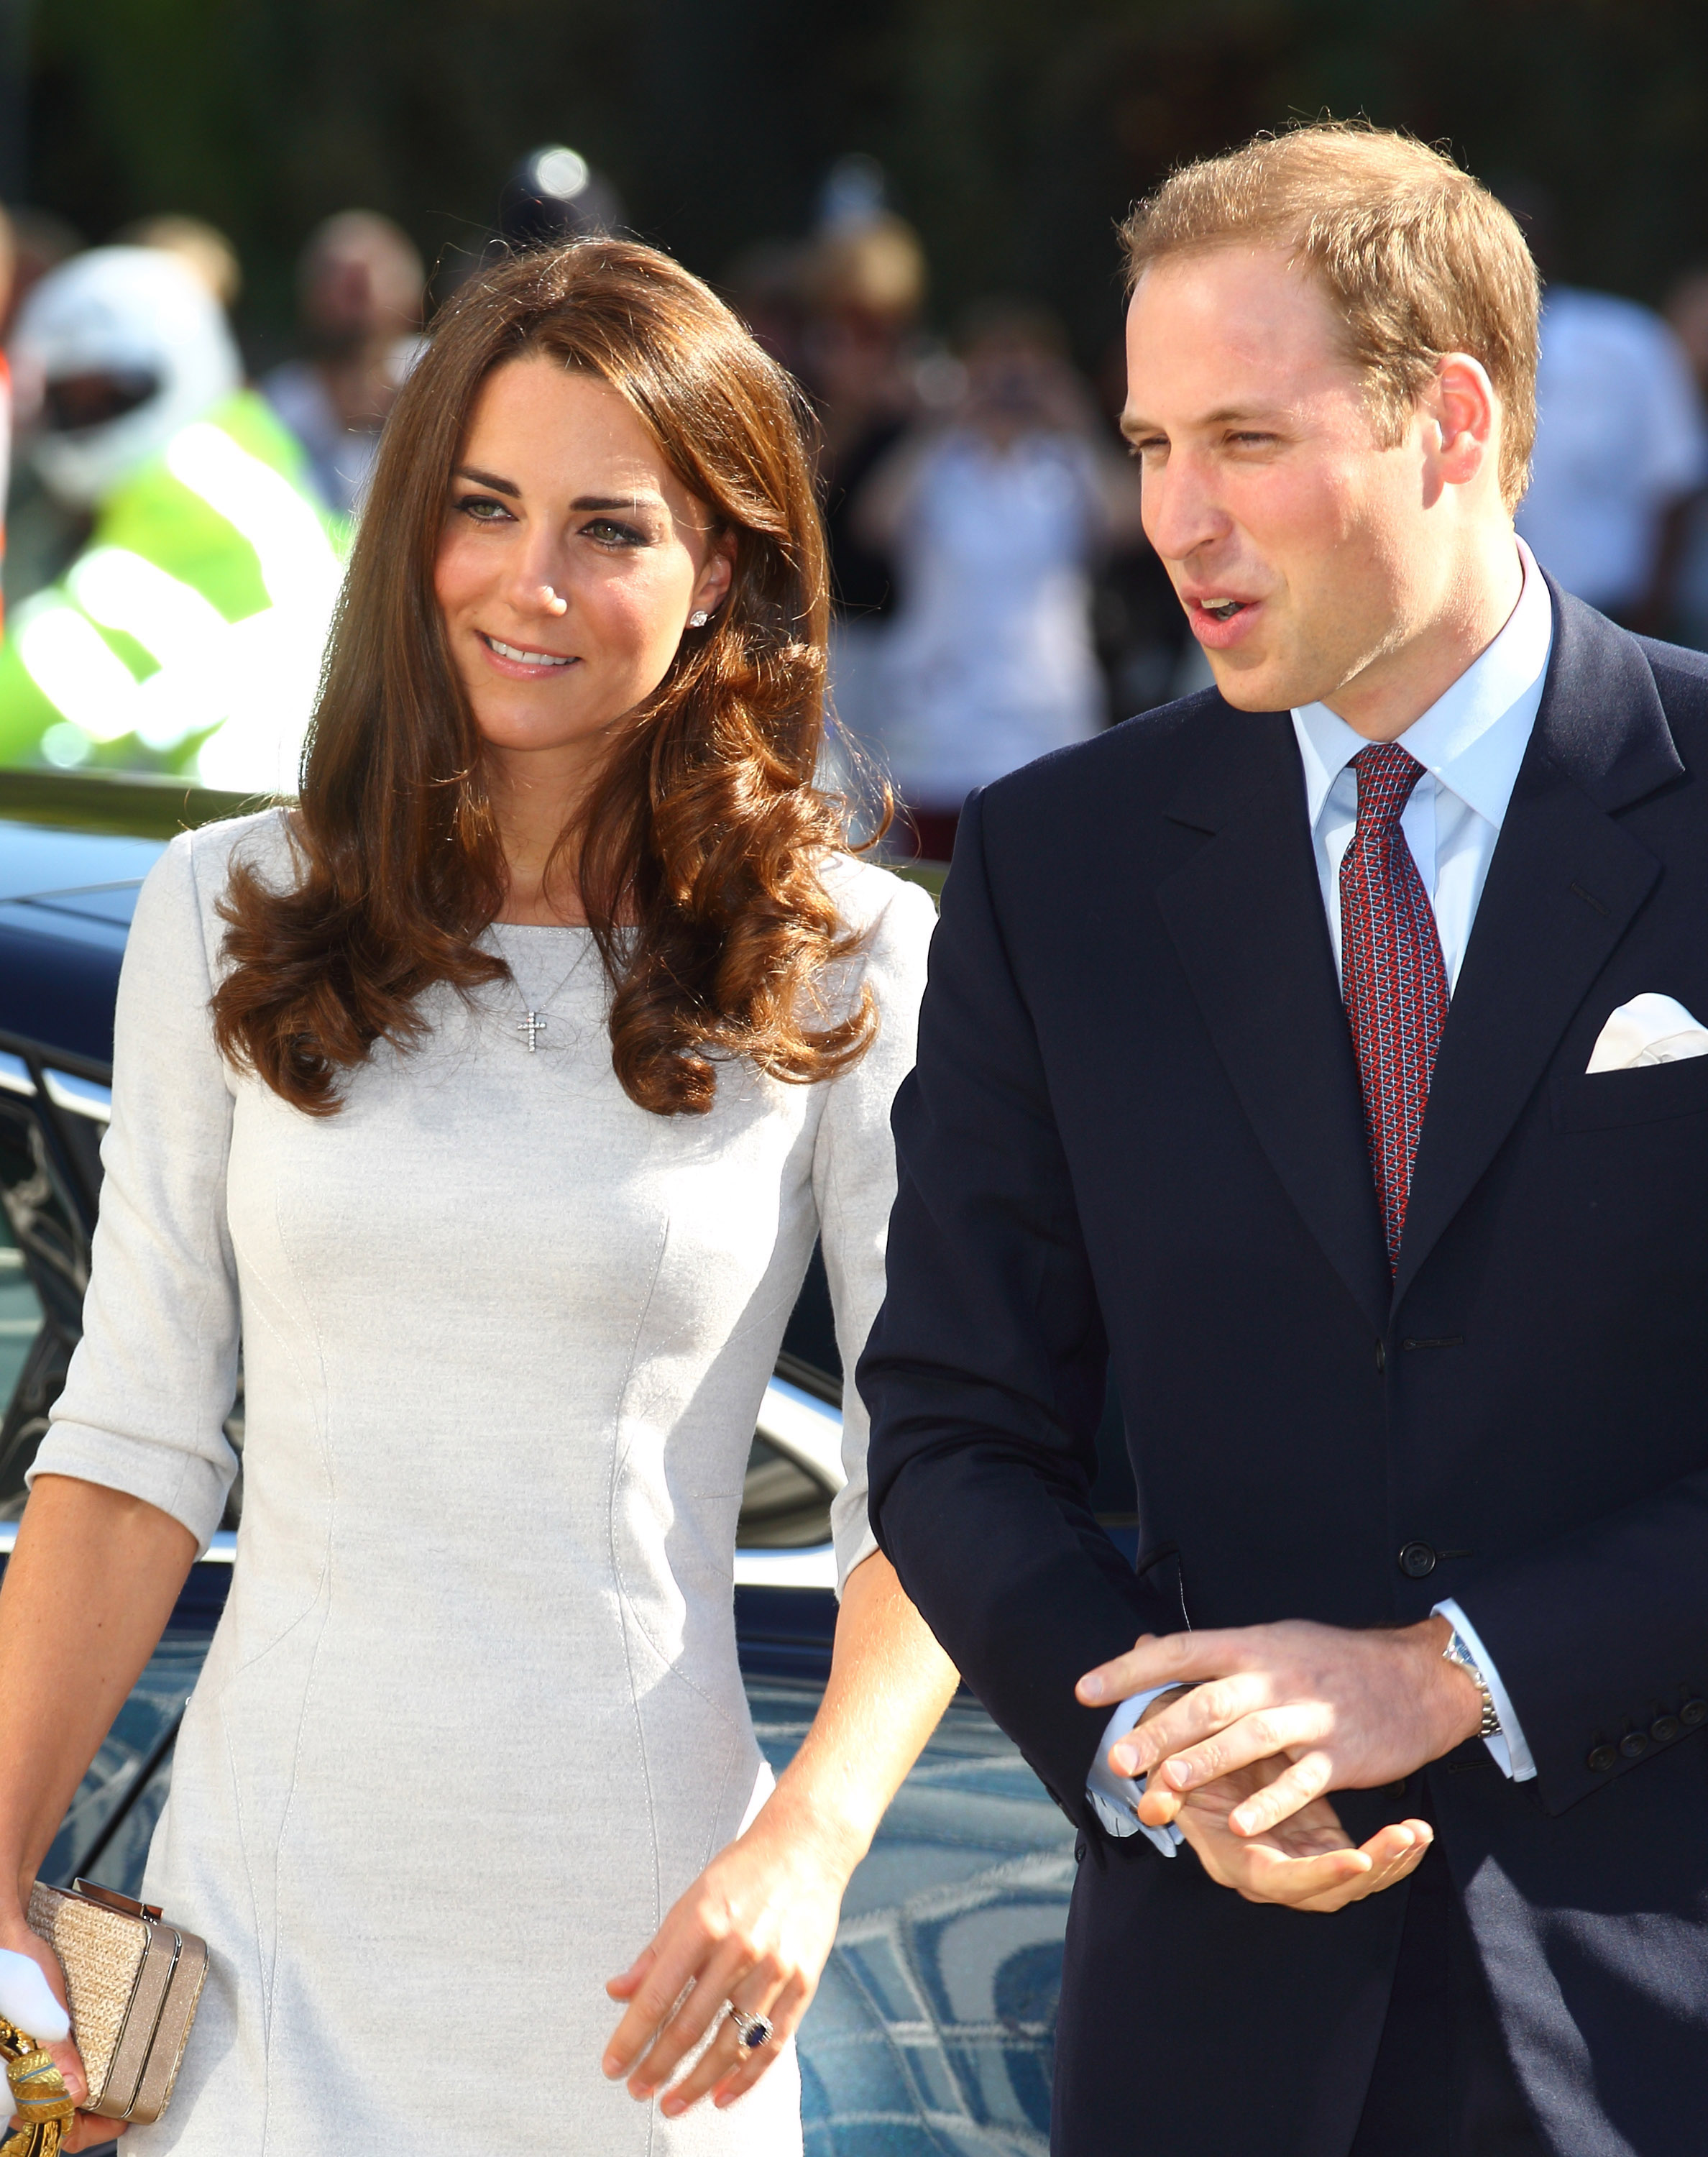 Prince William and Kate Middleton attended the opening of a children's cancer center.